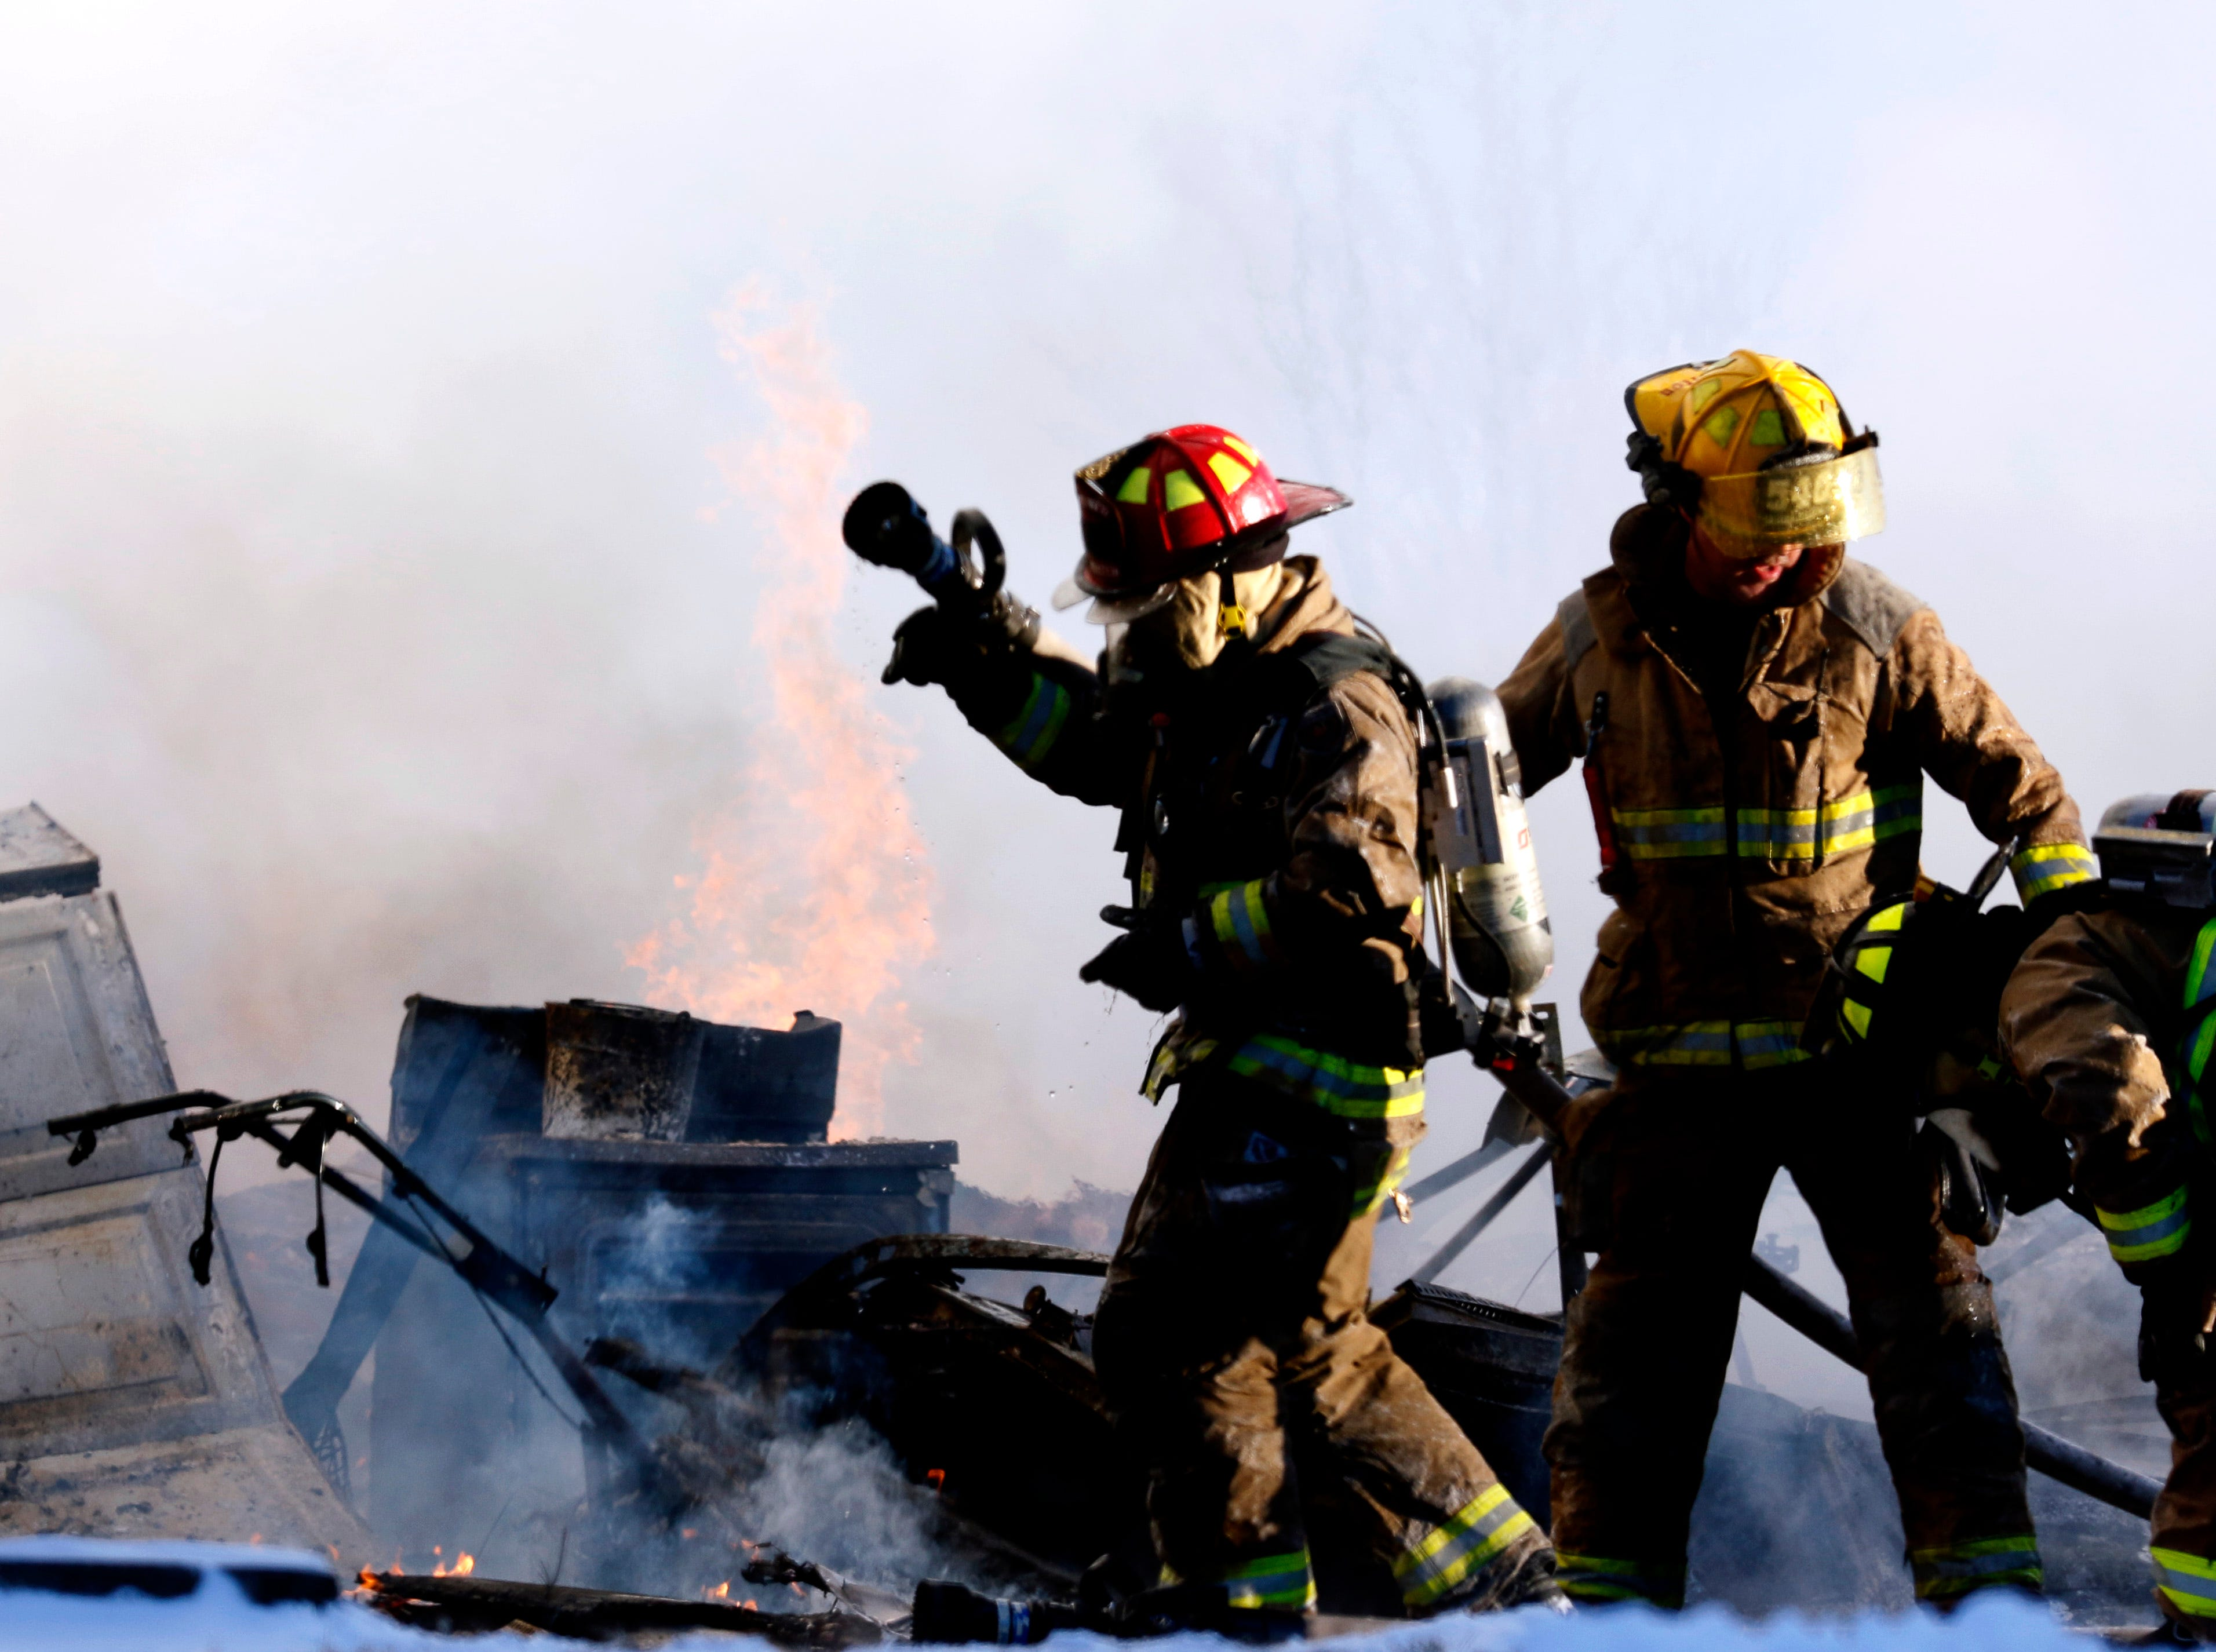 Firefighters regroup as they fight a fire Wednesday, Jan. 30, 2019, at 9640 Old RUshville Road NE in Rushcreek Township. Bremen-Rushcreek Township Fire Chief William Duvall said the fire started in the home's garage, burning it to the ground, and spreading into the home itself. Duvall said the home, garage and several vehicles were total losses. No one was injured in the fire.